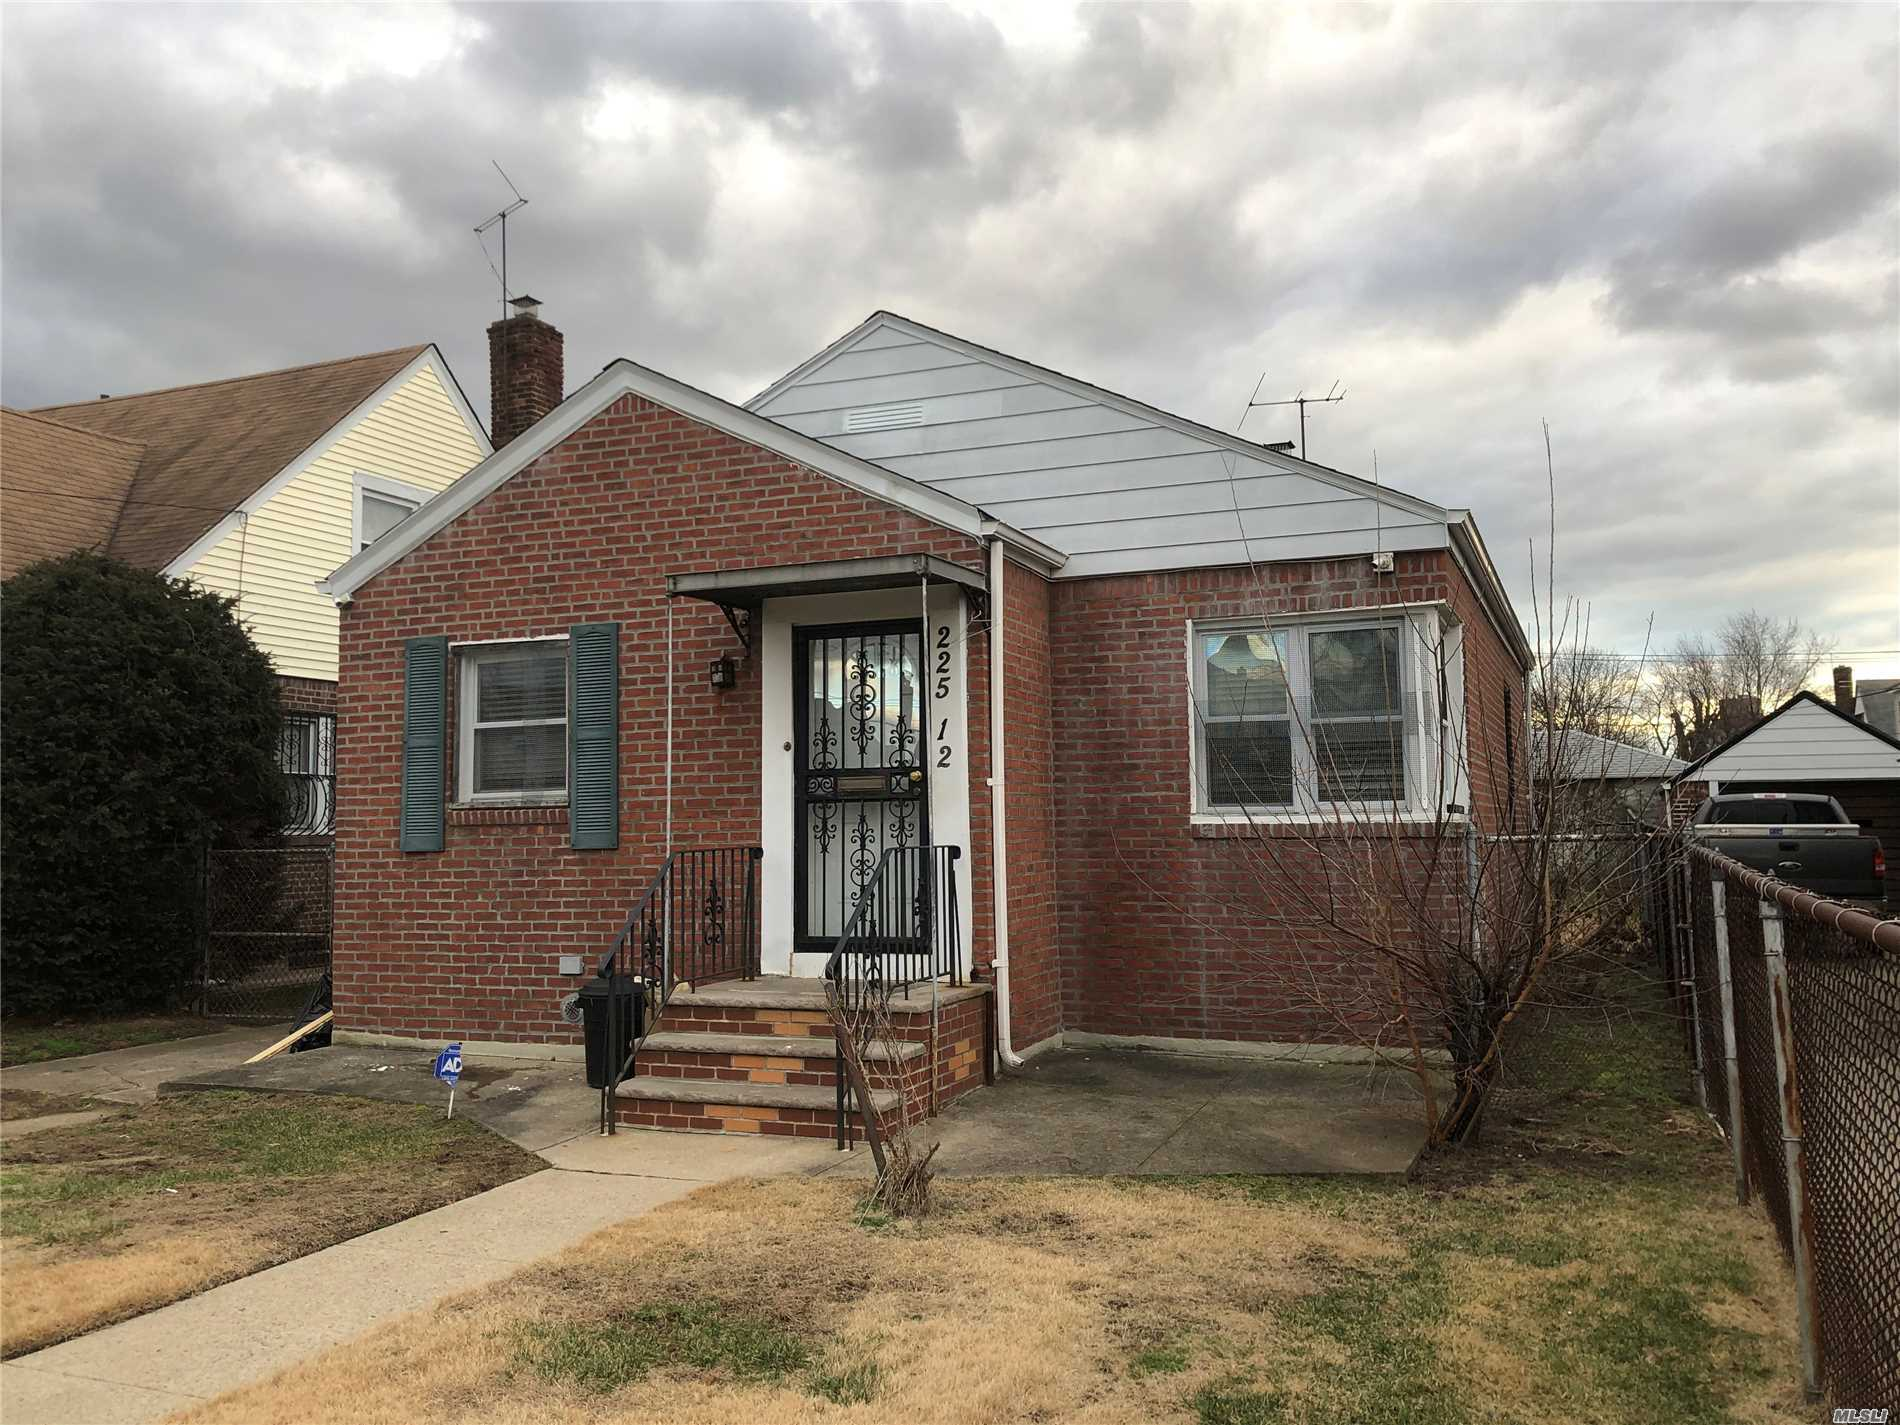 Just Bring Your Things And Move Into This Single Family Ranch Sitting On A 40X100 Lot Nestled On A Beautiful Housed Lined Street In Cambria Heights. Hardwood Flooring In The Bedrooms And The Living Room. Bedrooms With Ample Closet Space, Fully Tiled Bathroom, And Full Basement, Private Driveway And A Garage. Much More! Prime Location, Close To Transportation, Schools, And Highways.